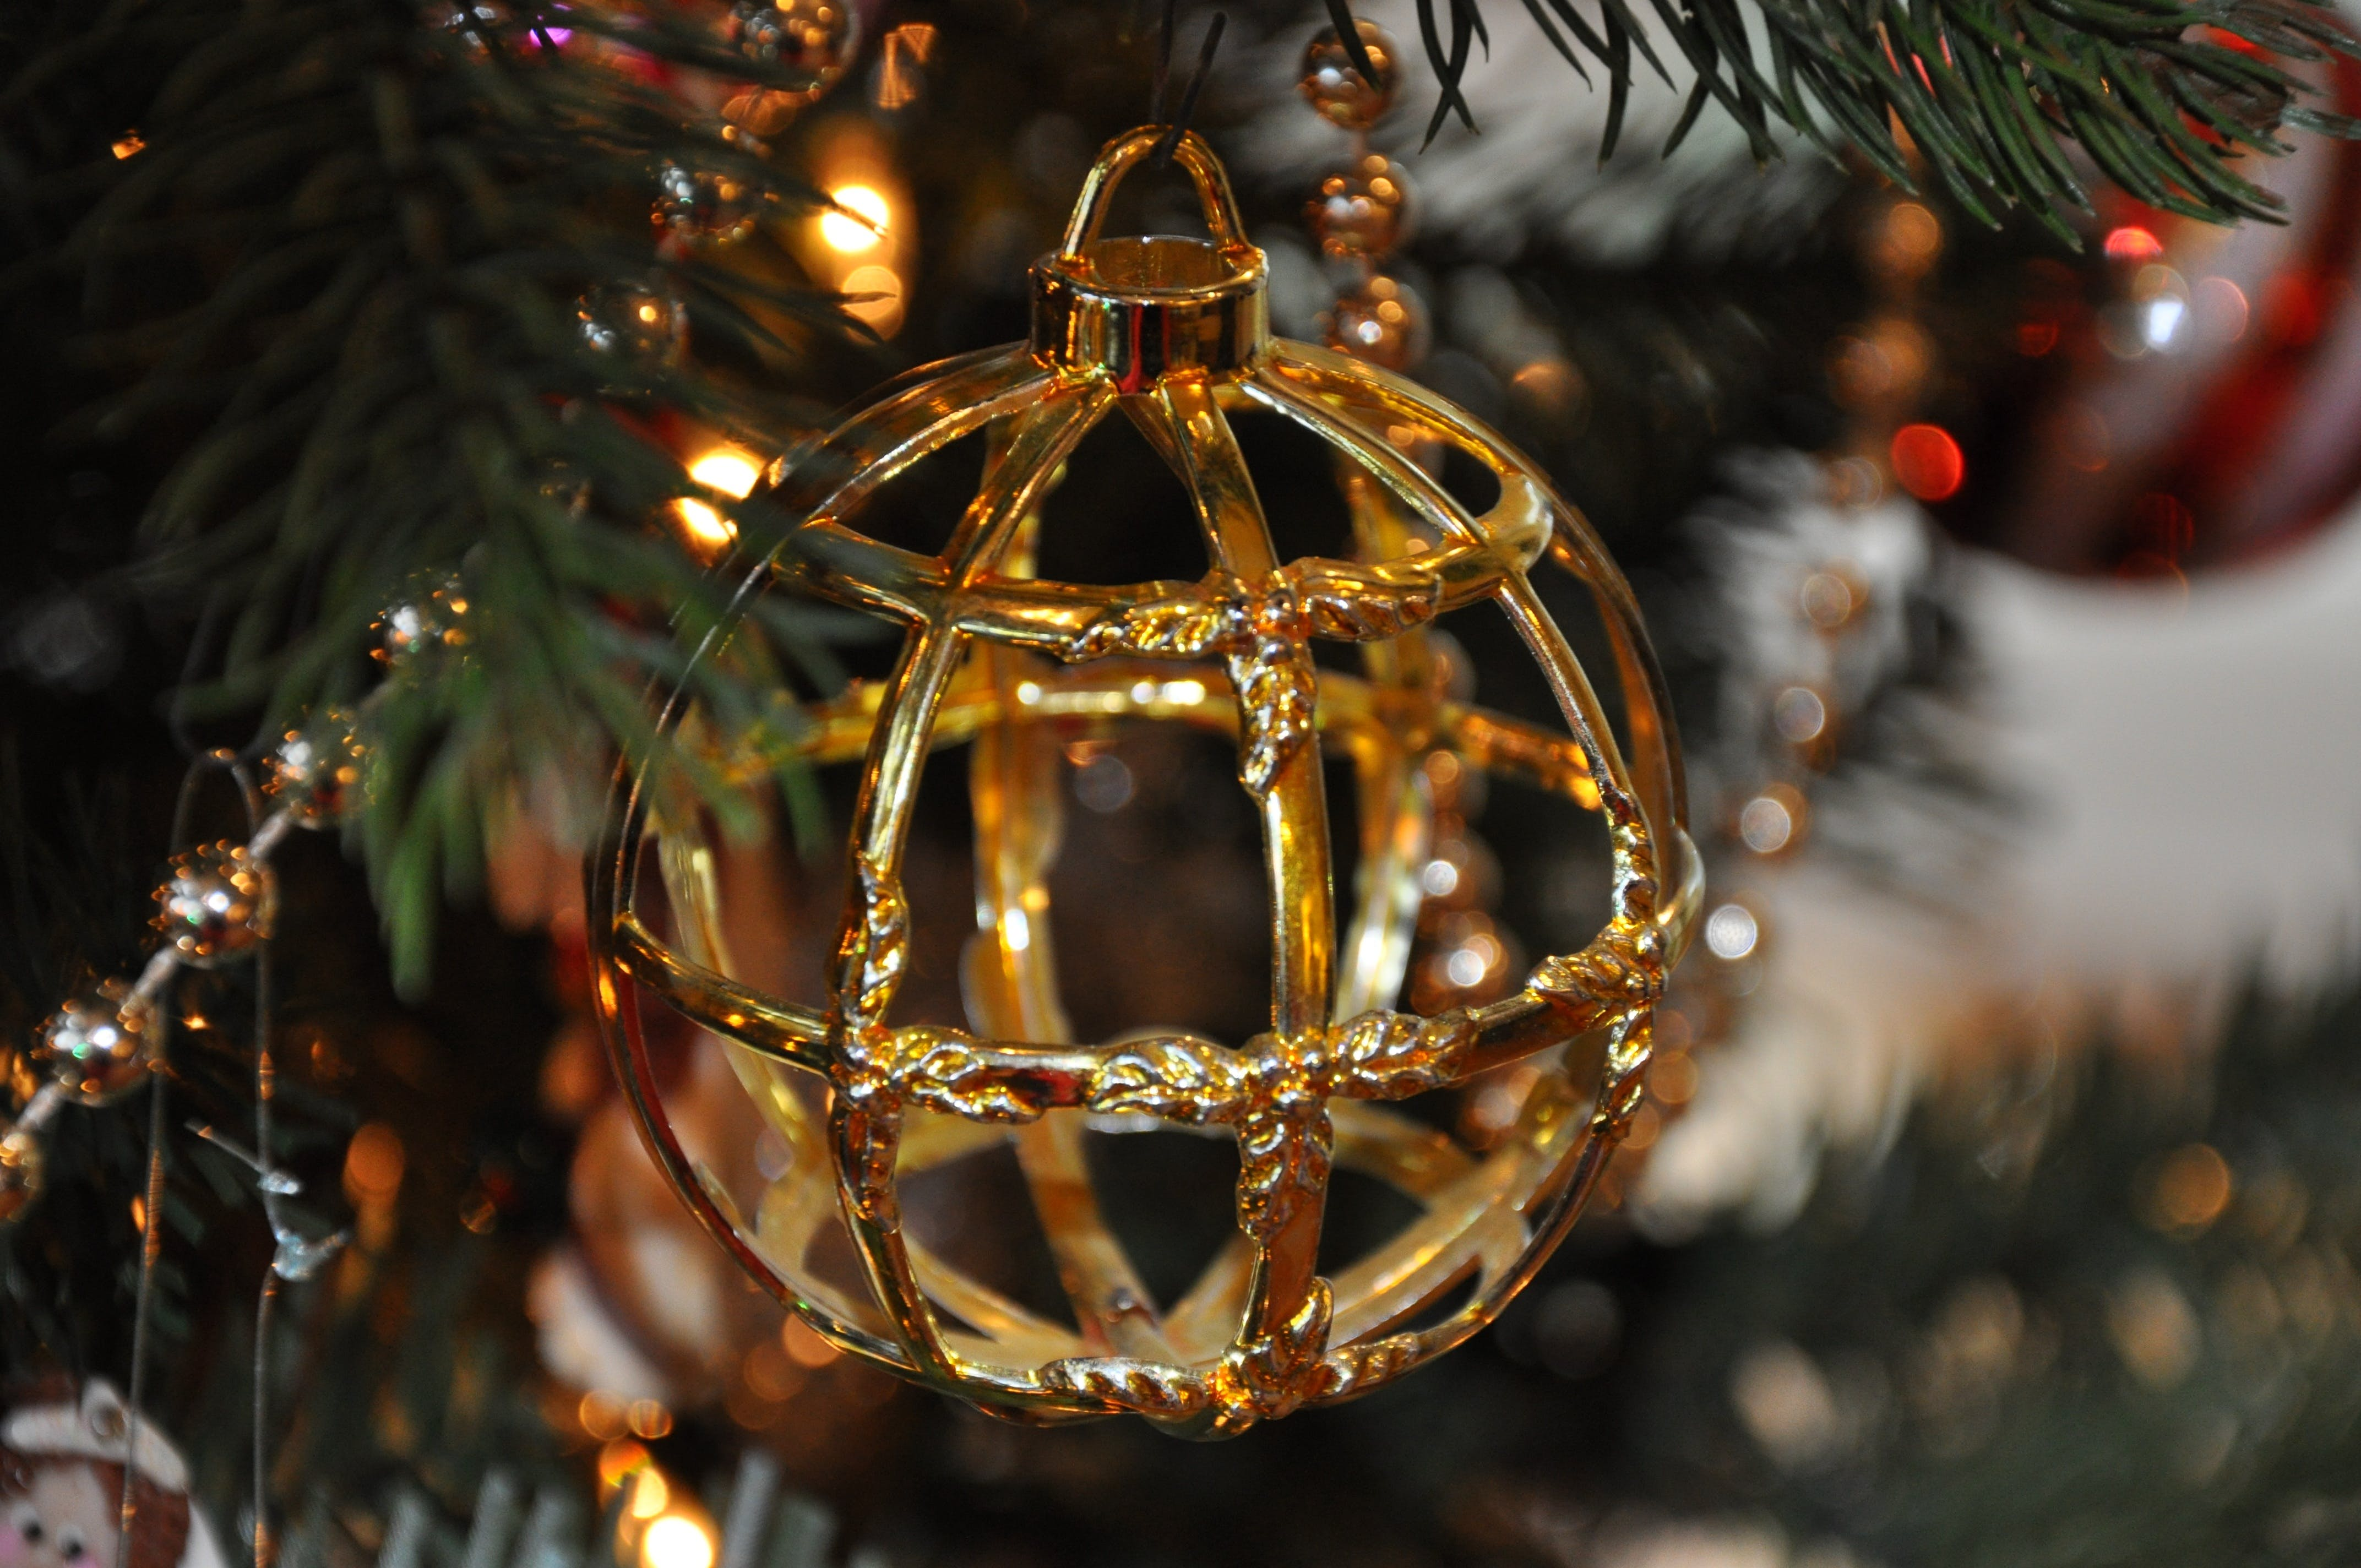 Free stock photo of holiday, blur, tree, ball